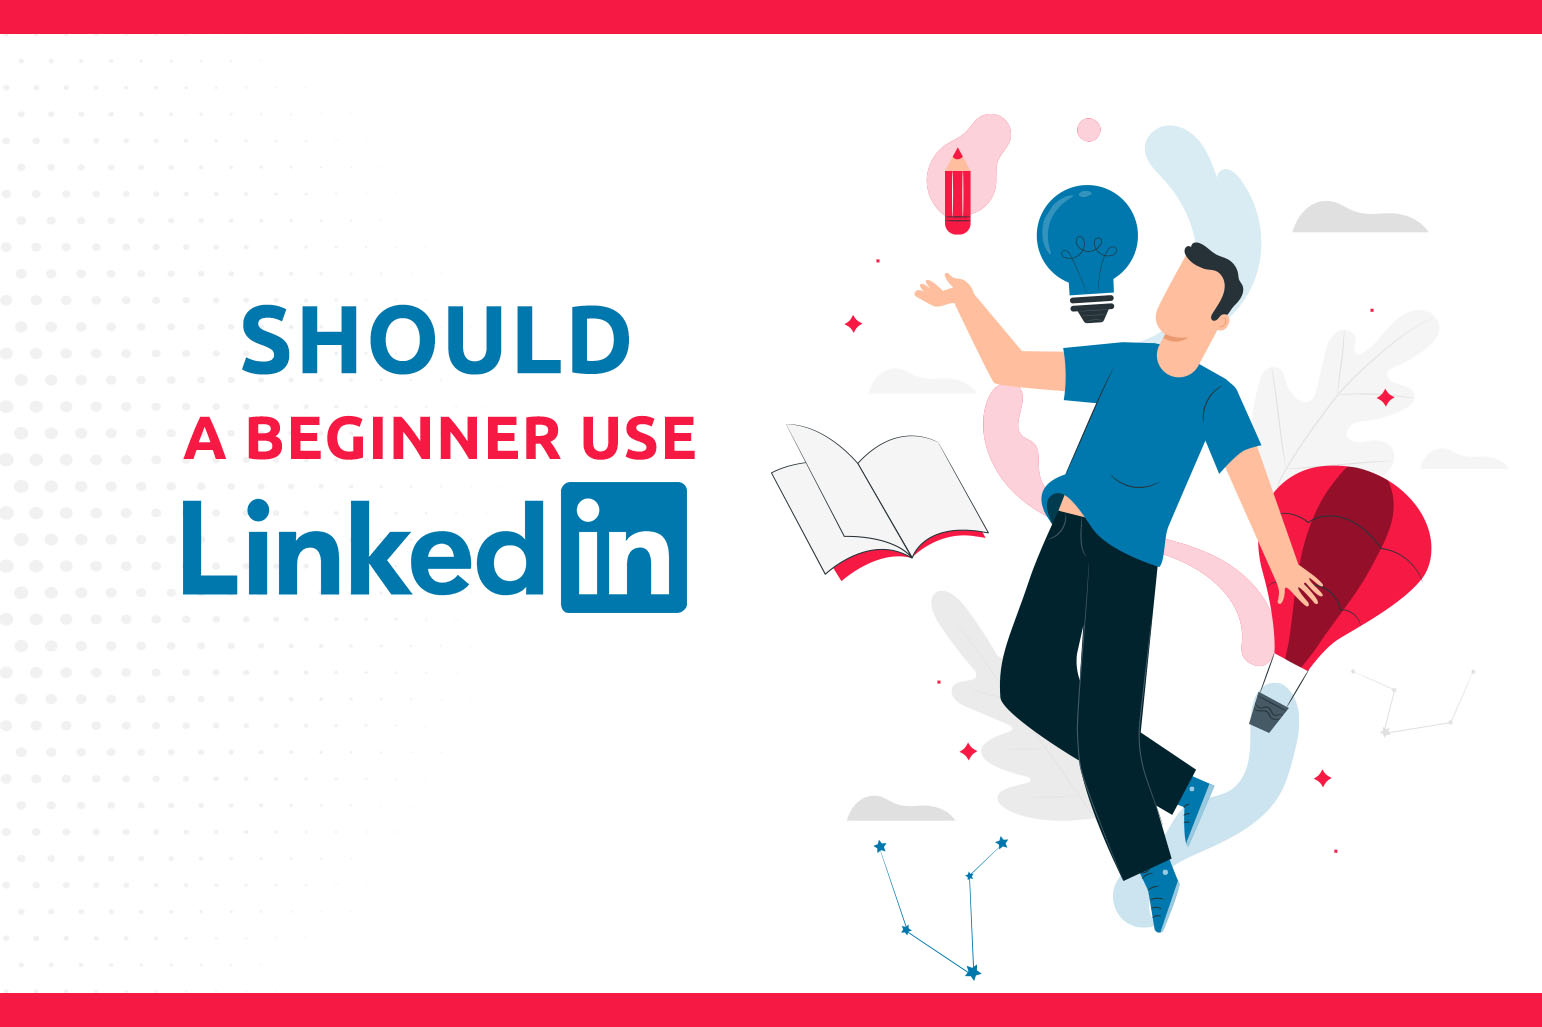 Should A Beginner Use LinkedIn?